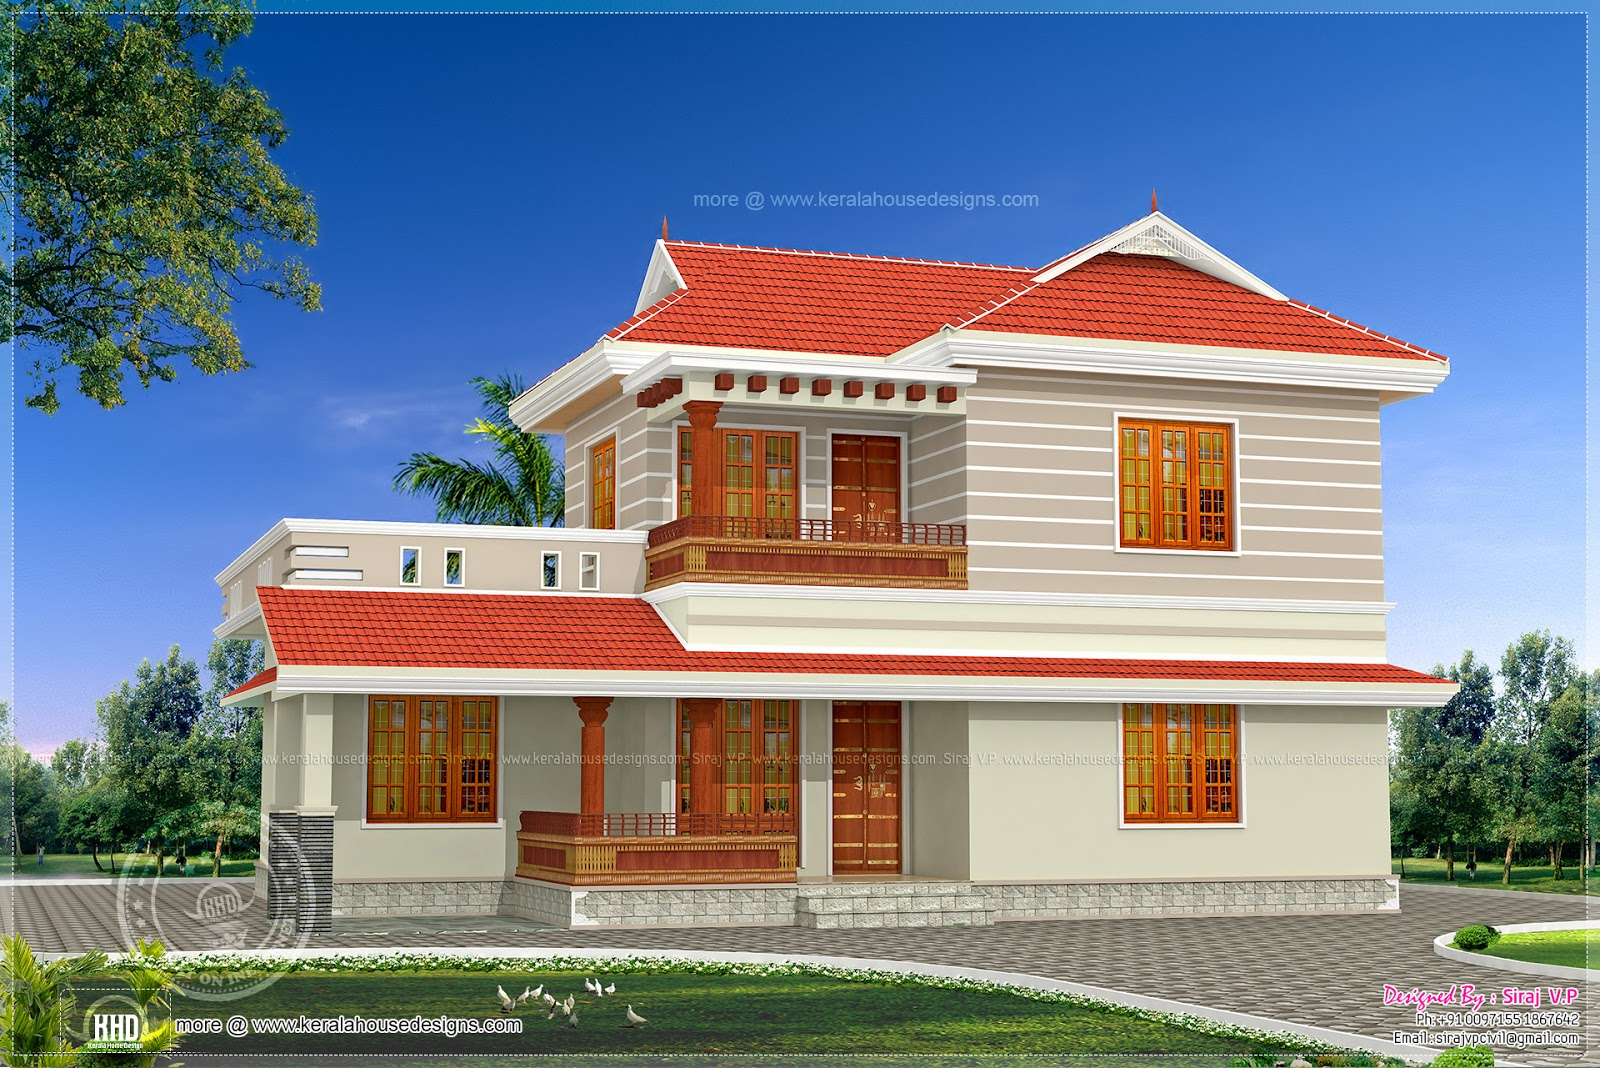 3 bedroom house exterior design in 200 square yards 200 yards house design